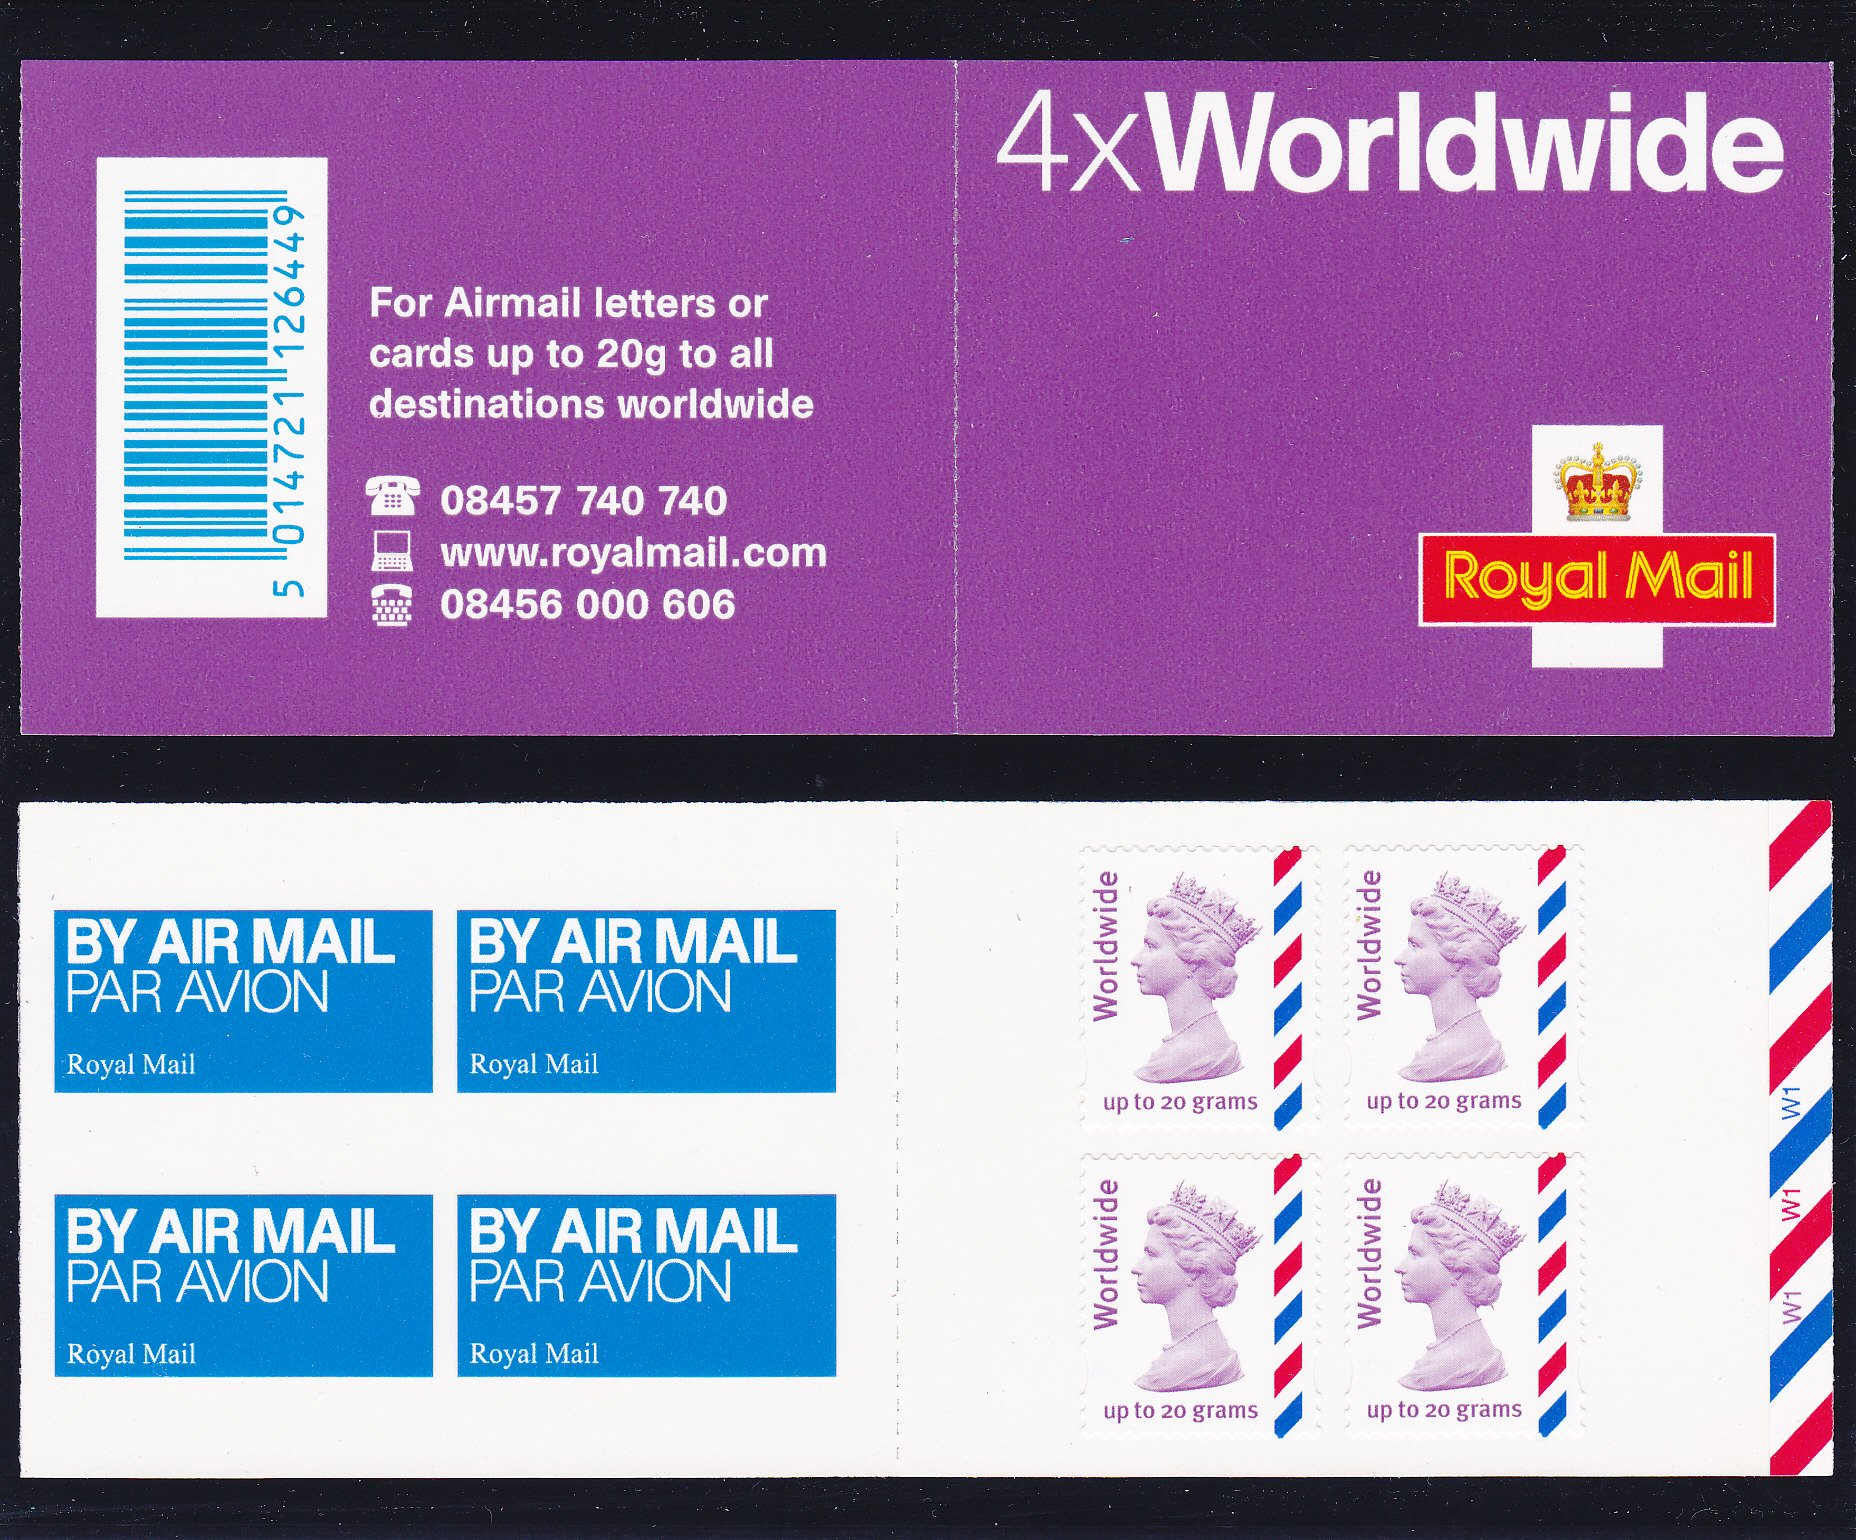 Booklet Airmail MJ3 Worldwide Cyl W1 2010